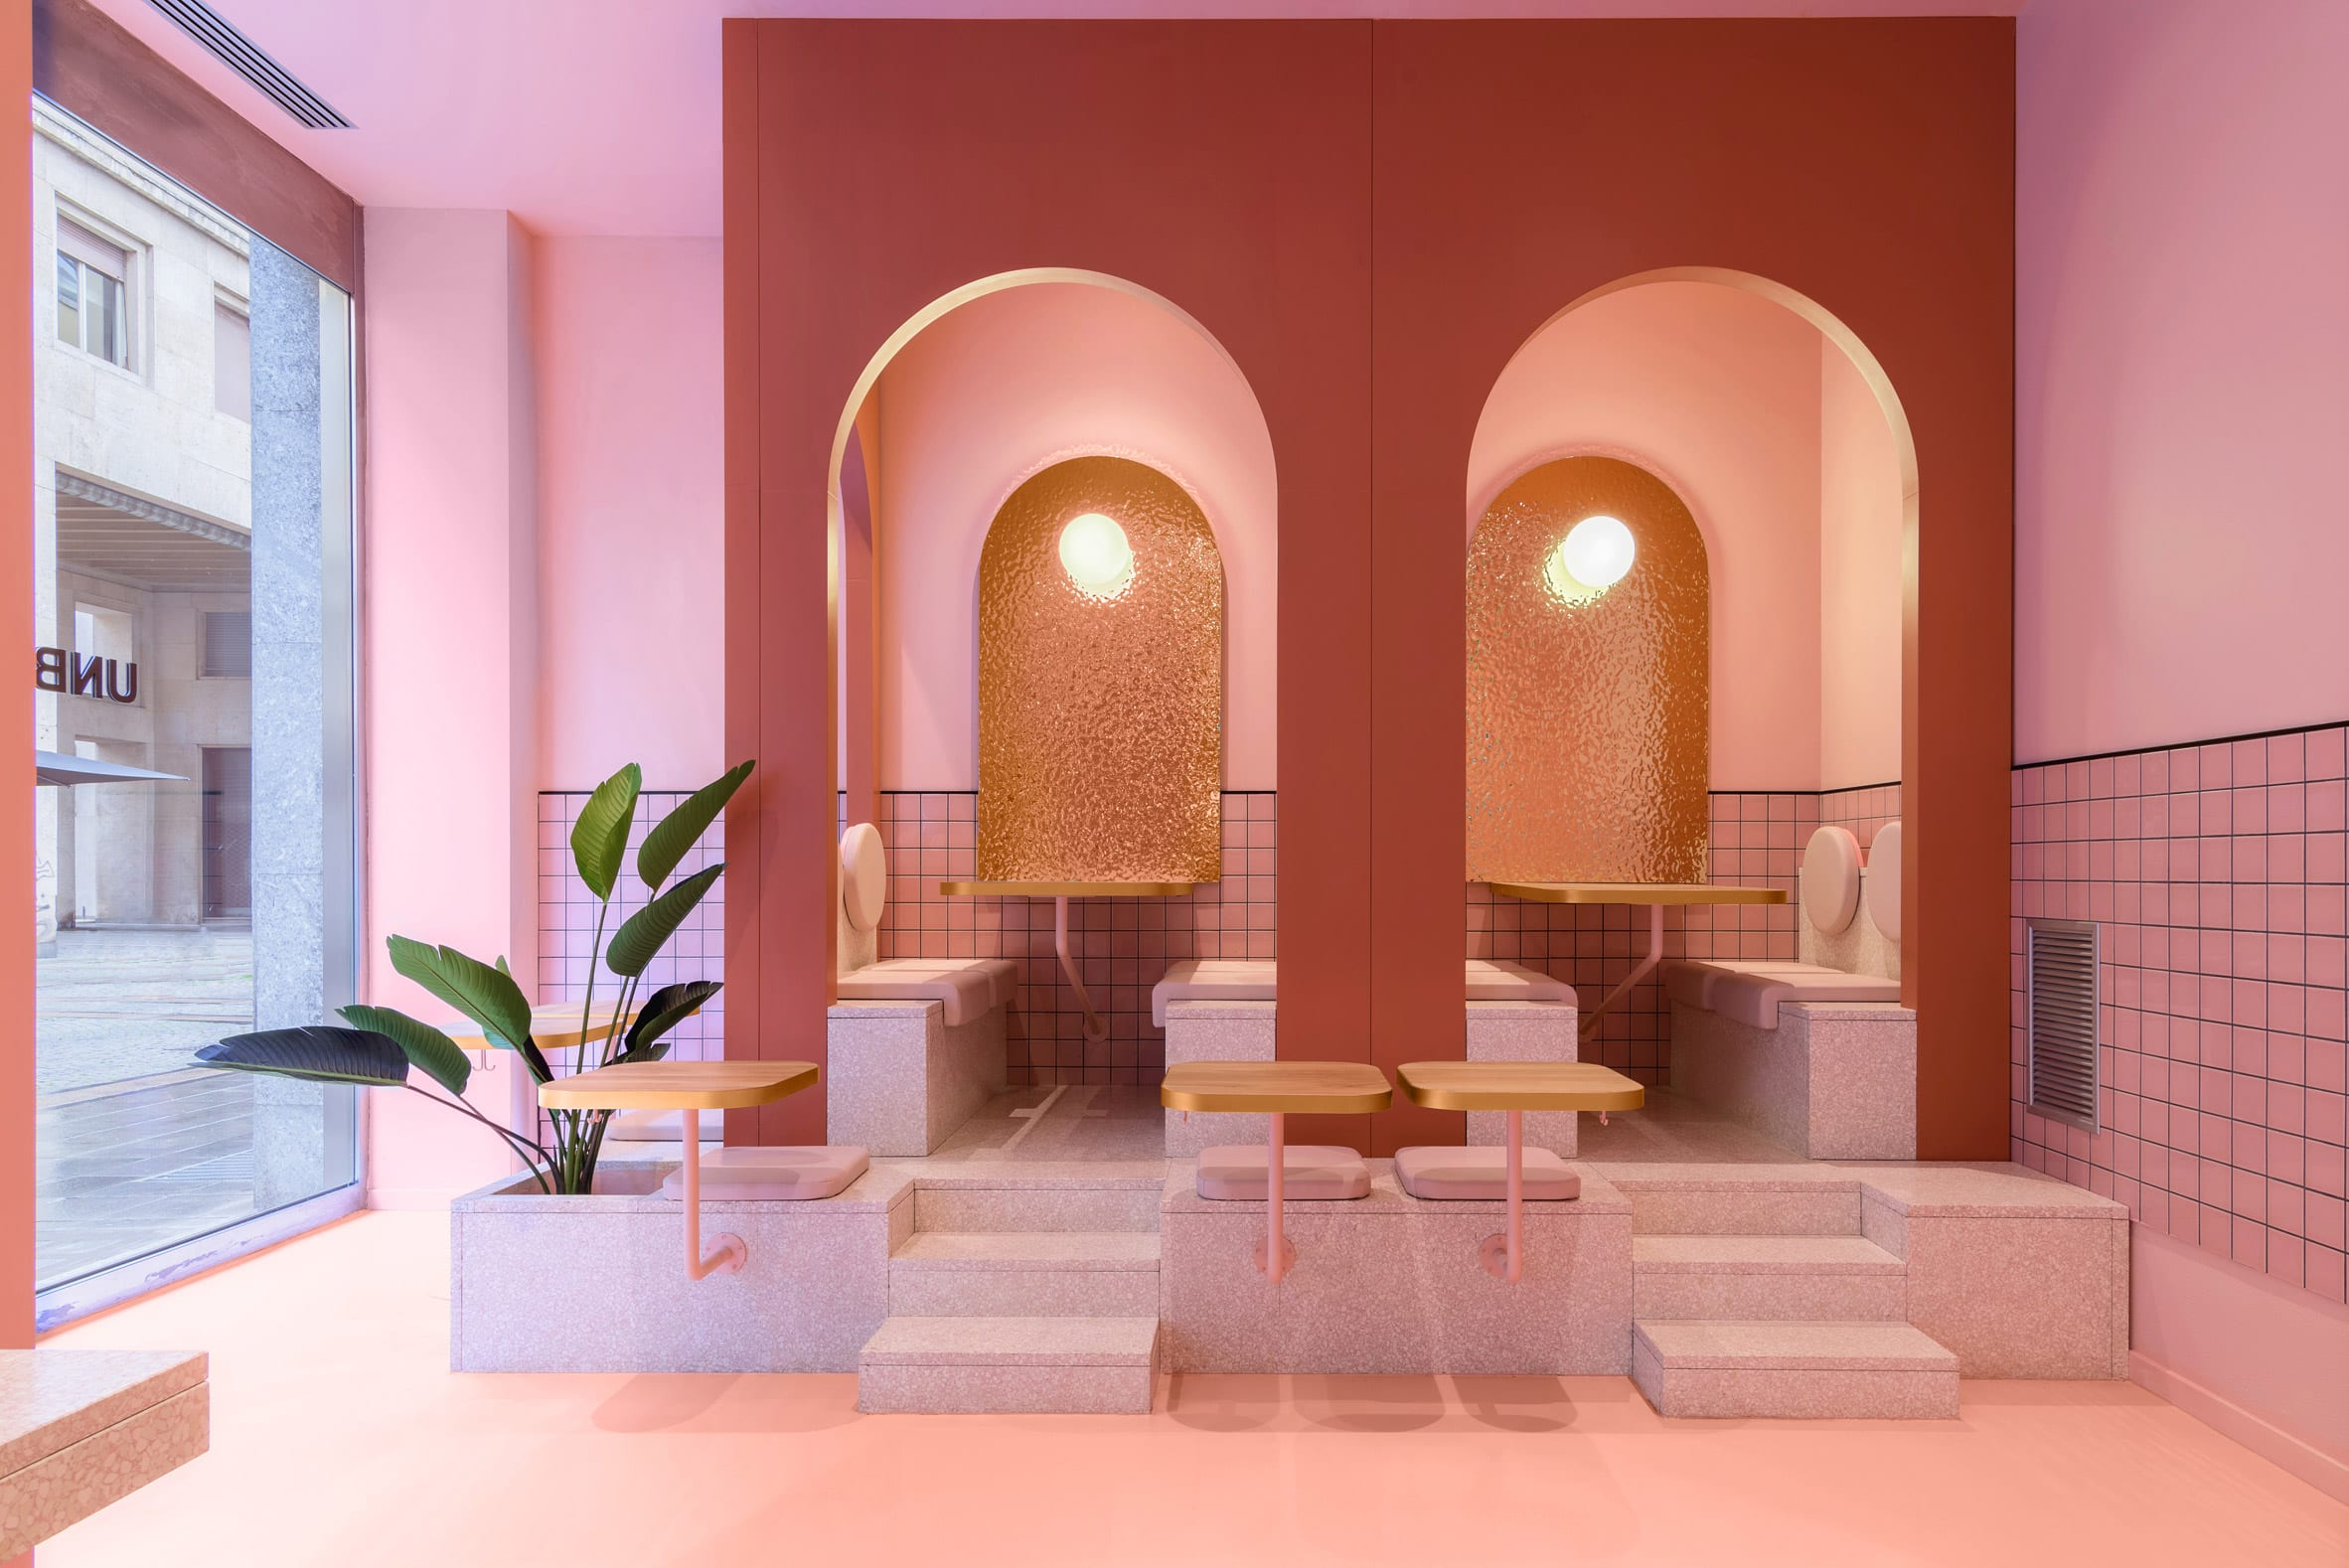 A planter features in the pink seating area